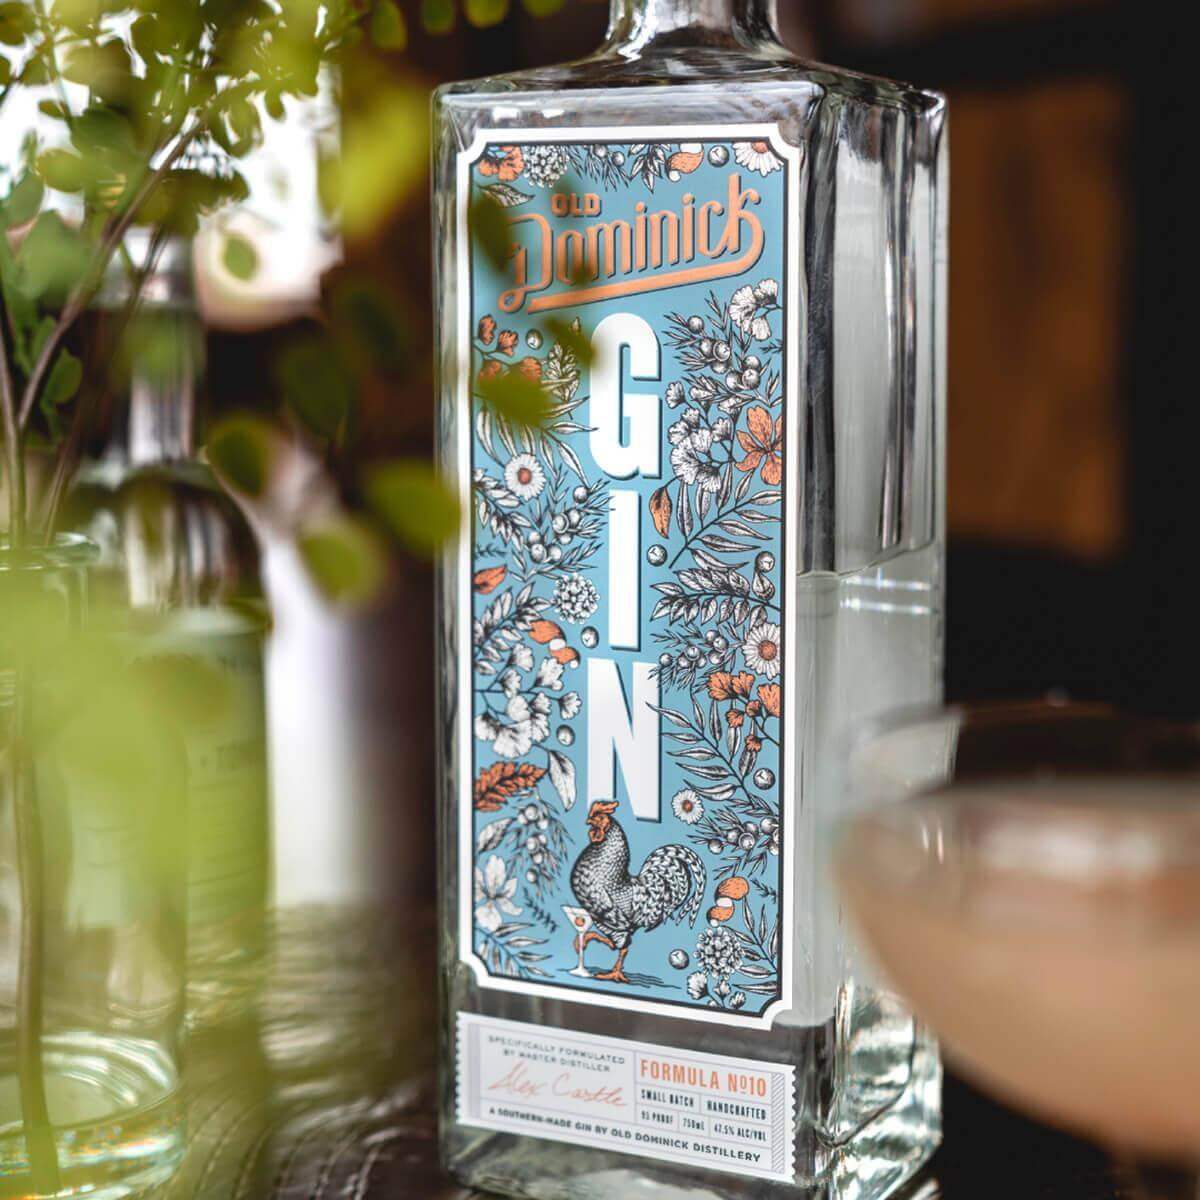 Formula Number 10 Gin bottle surrounded by plants